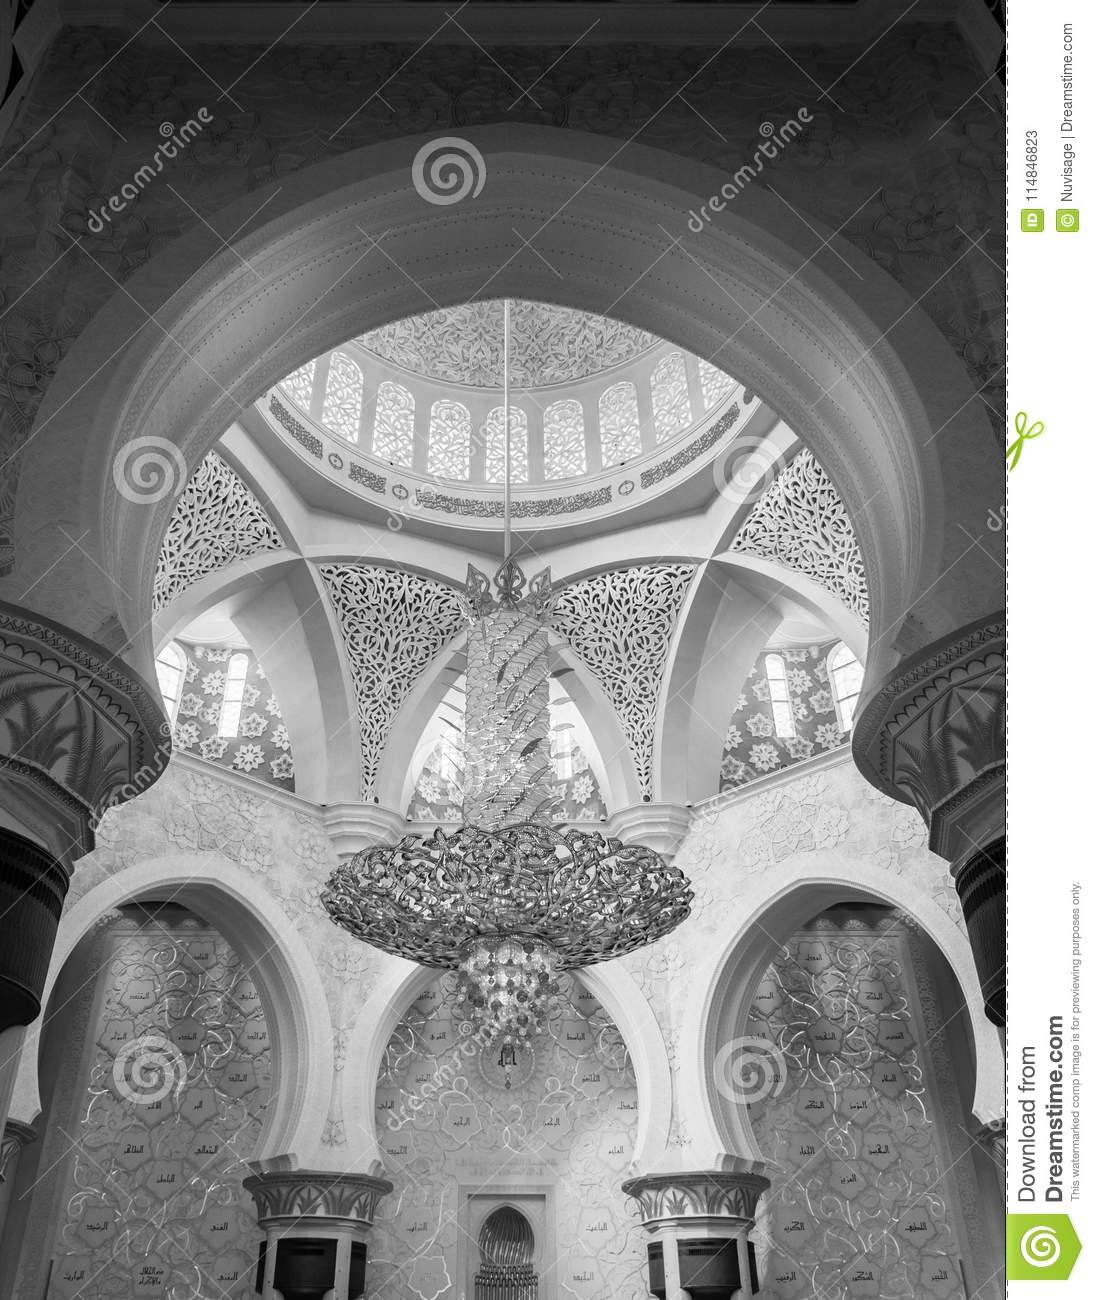 Exterior: Interior Of Sheikh Zayed Grand Mosque And Large Crytal